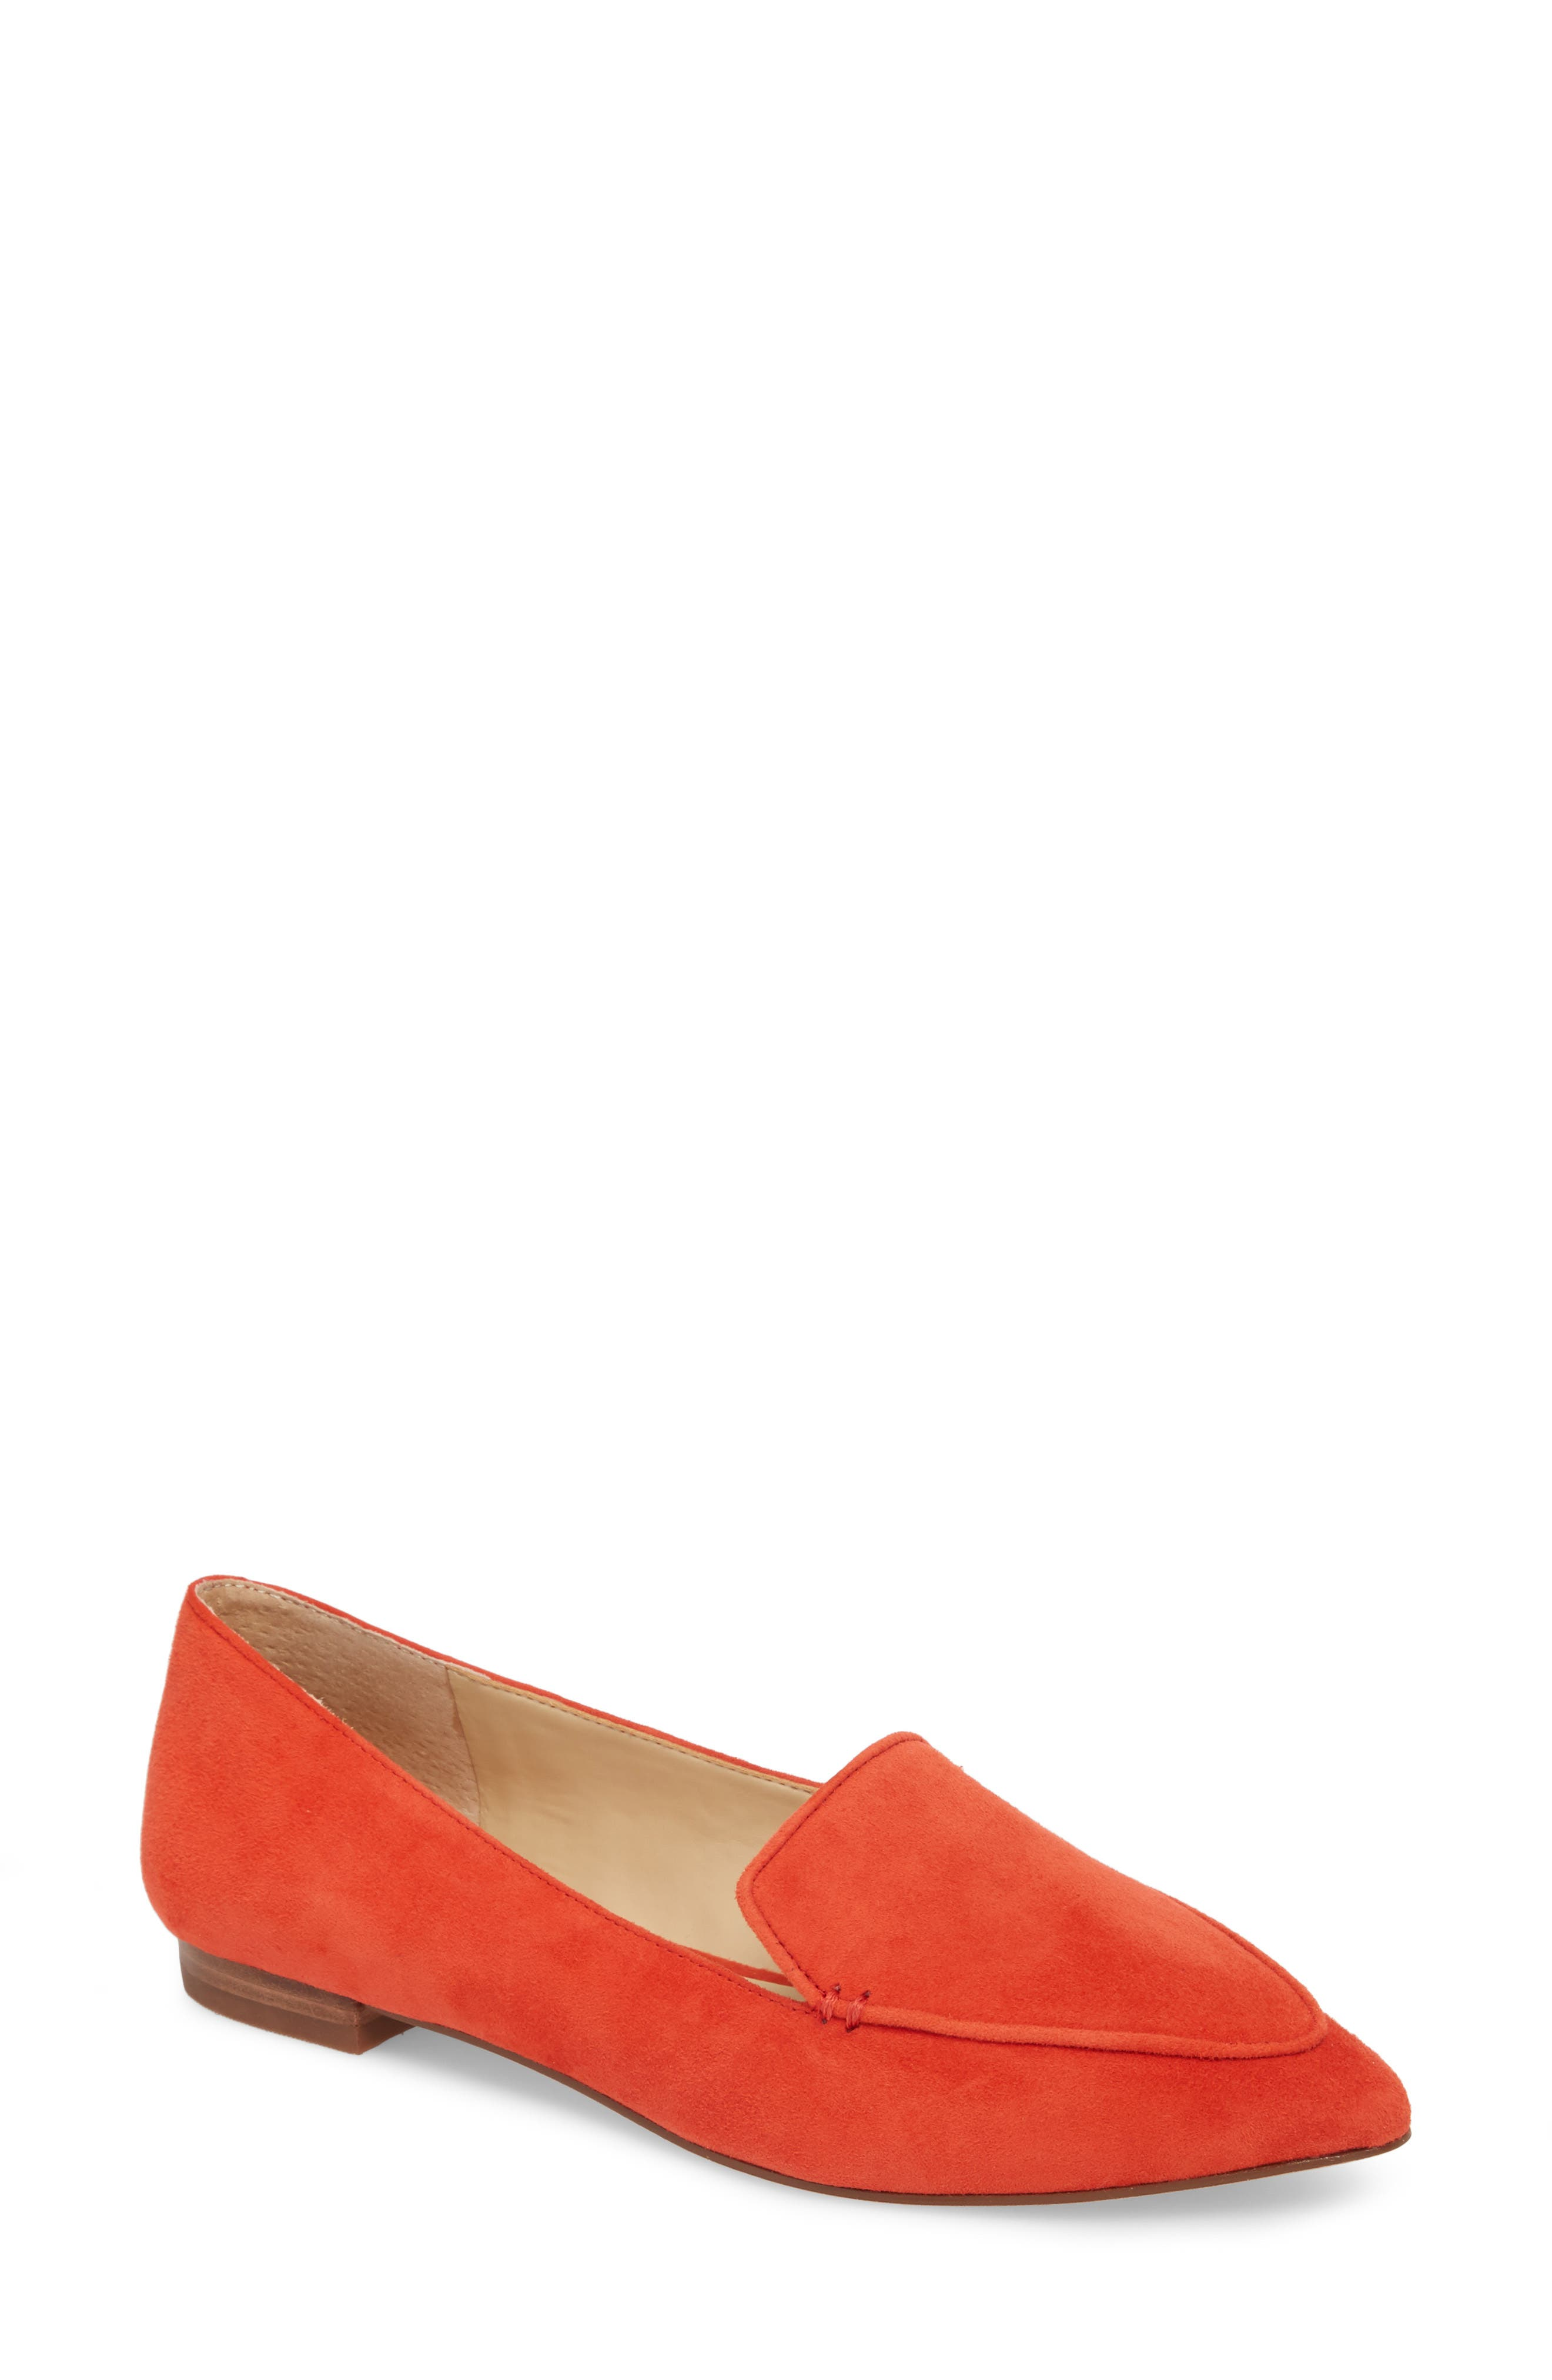 'Cammila' Pointy Toe Loafer,                             Main thumbnail 1, color,                             Deep Coral